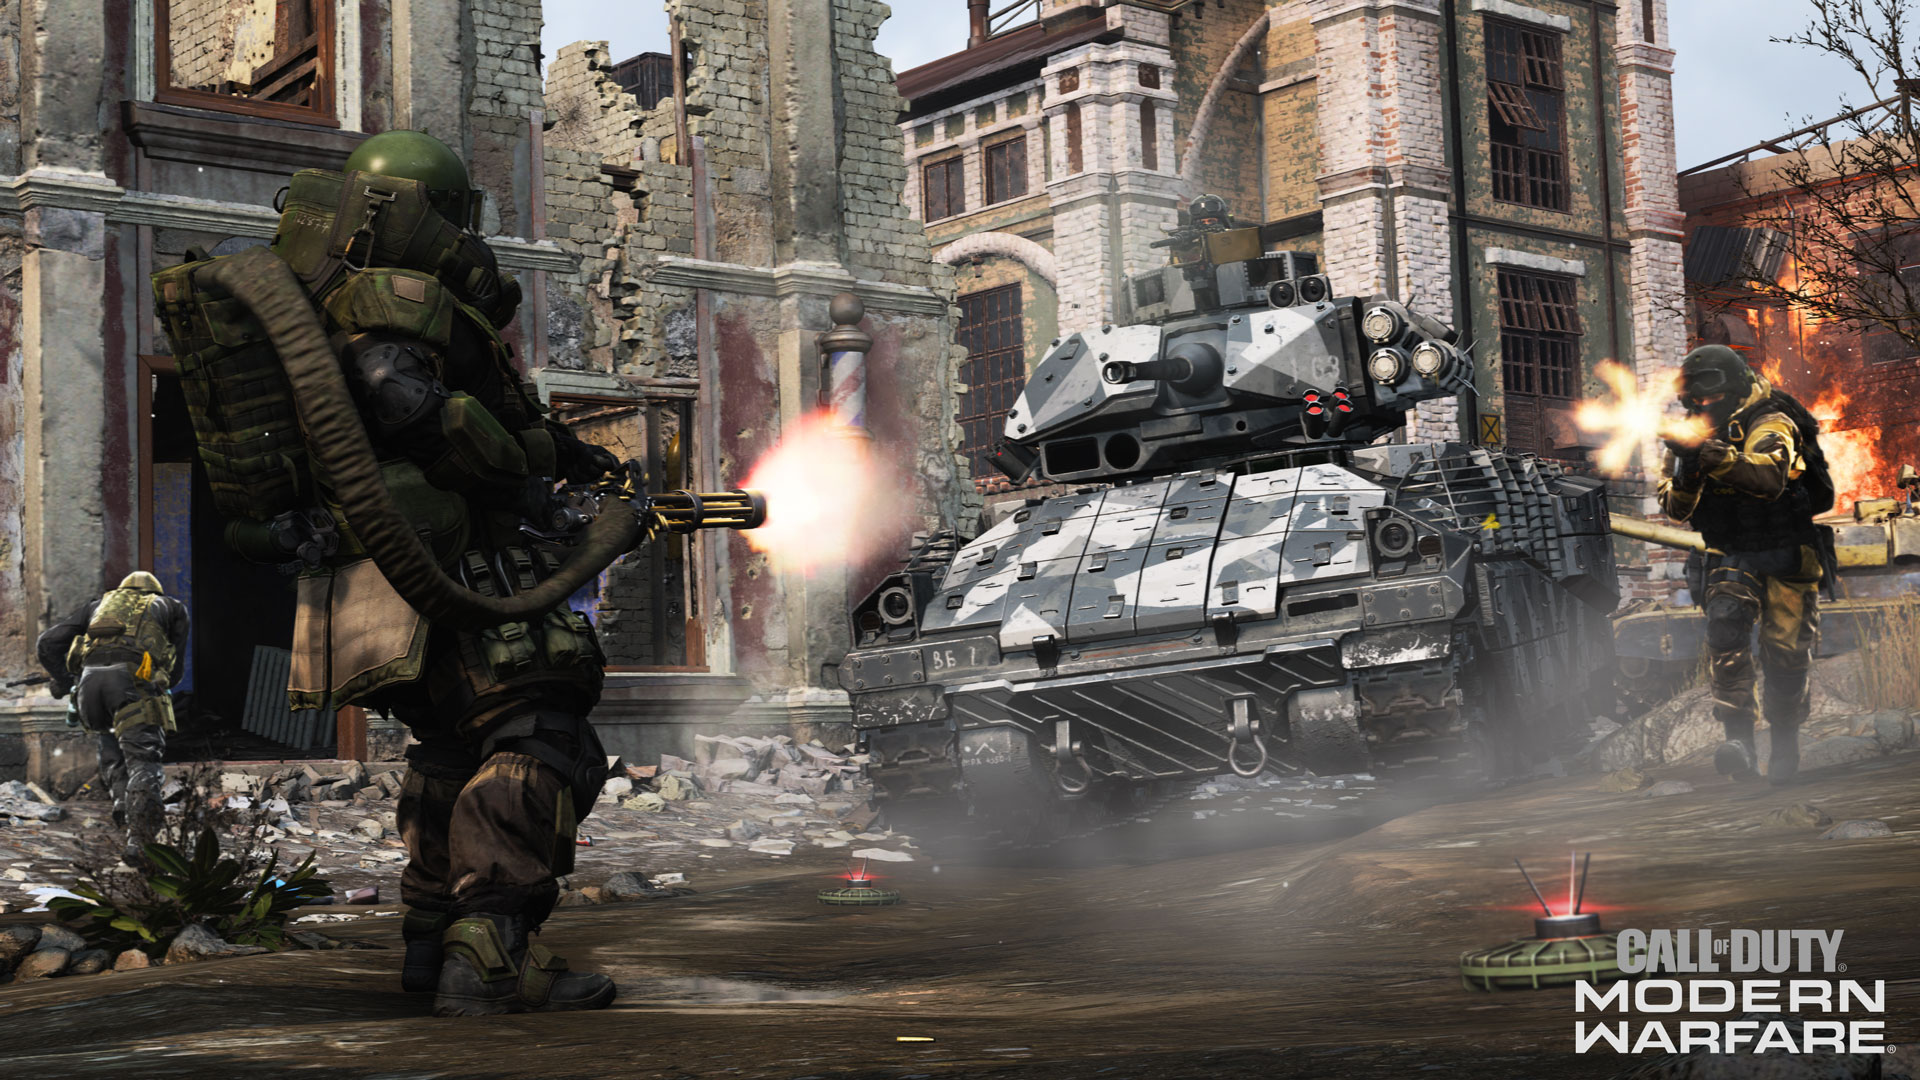 Media asset in full size related to 3dfxzone.it news item entitled as follows: AMD rilascia il driver grafico Radeon Software Adrenalin 2019 Edition 19.10.2 | Image Name: news30117_Call-of-Duty-Modern-Warfare_2.jpg